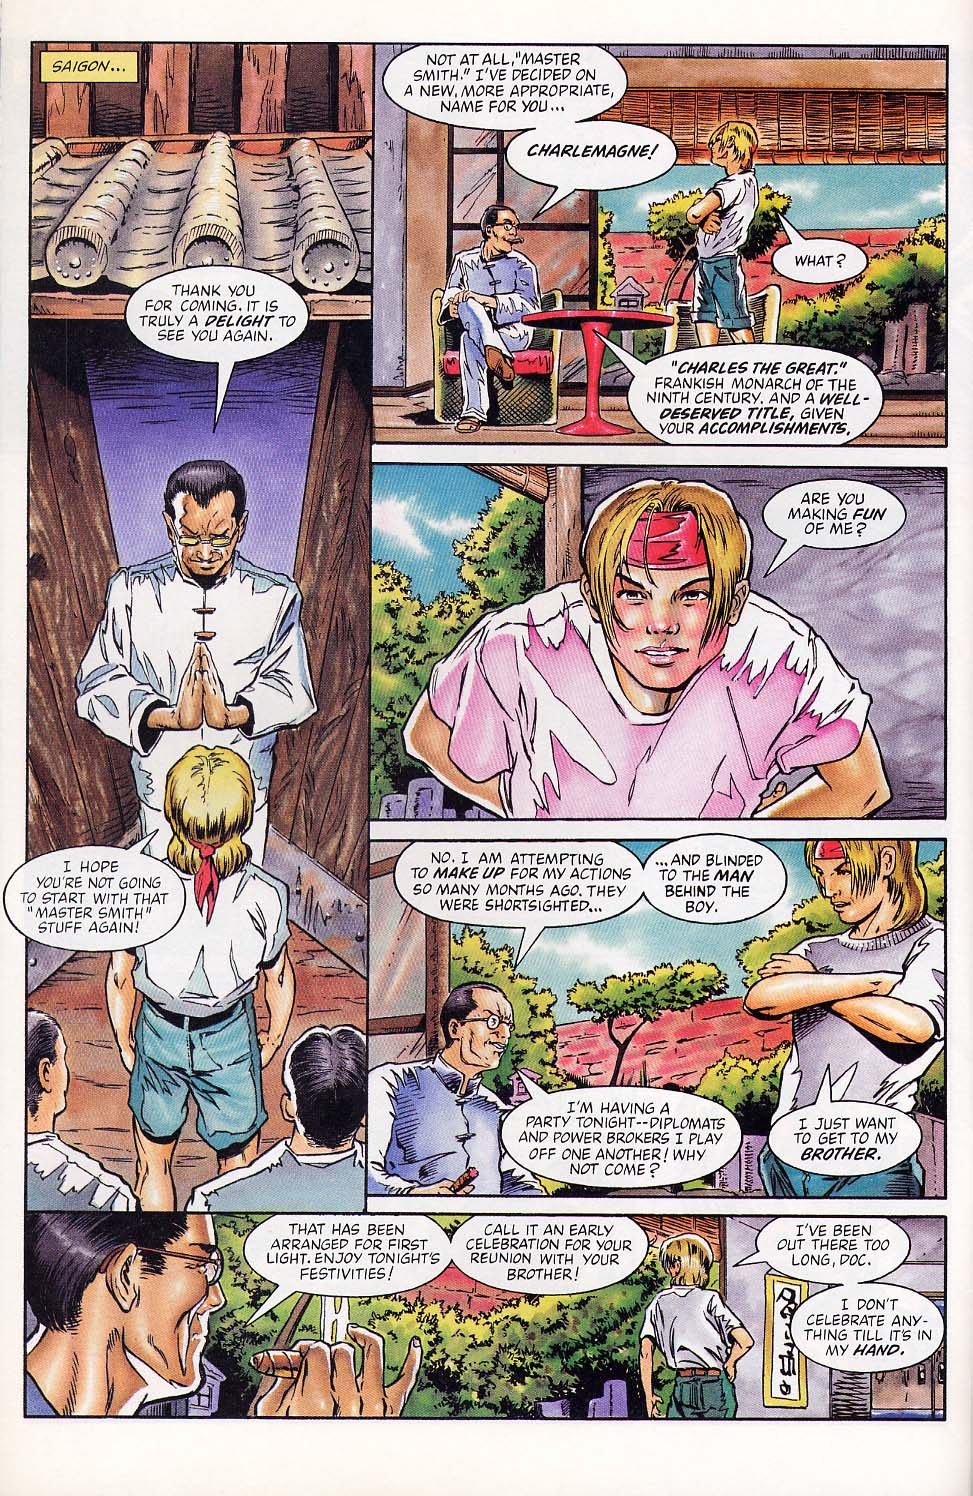 Read online Charlemagne comic -  Issue #1 - 19